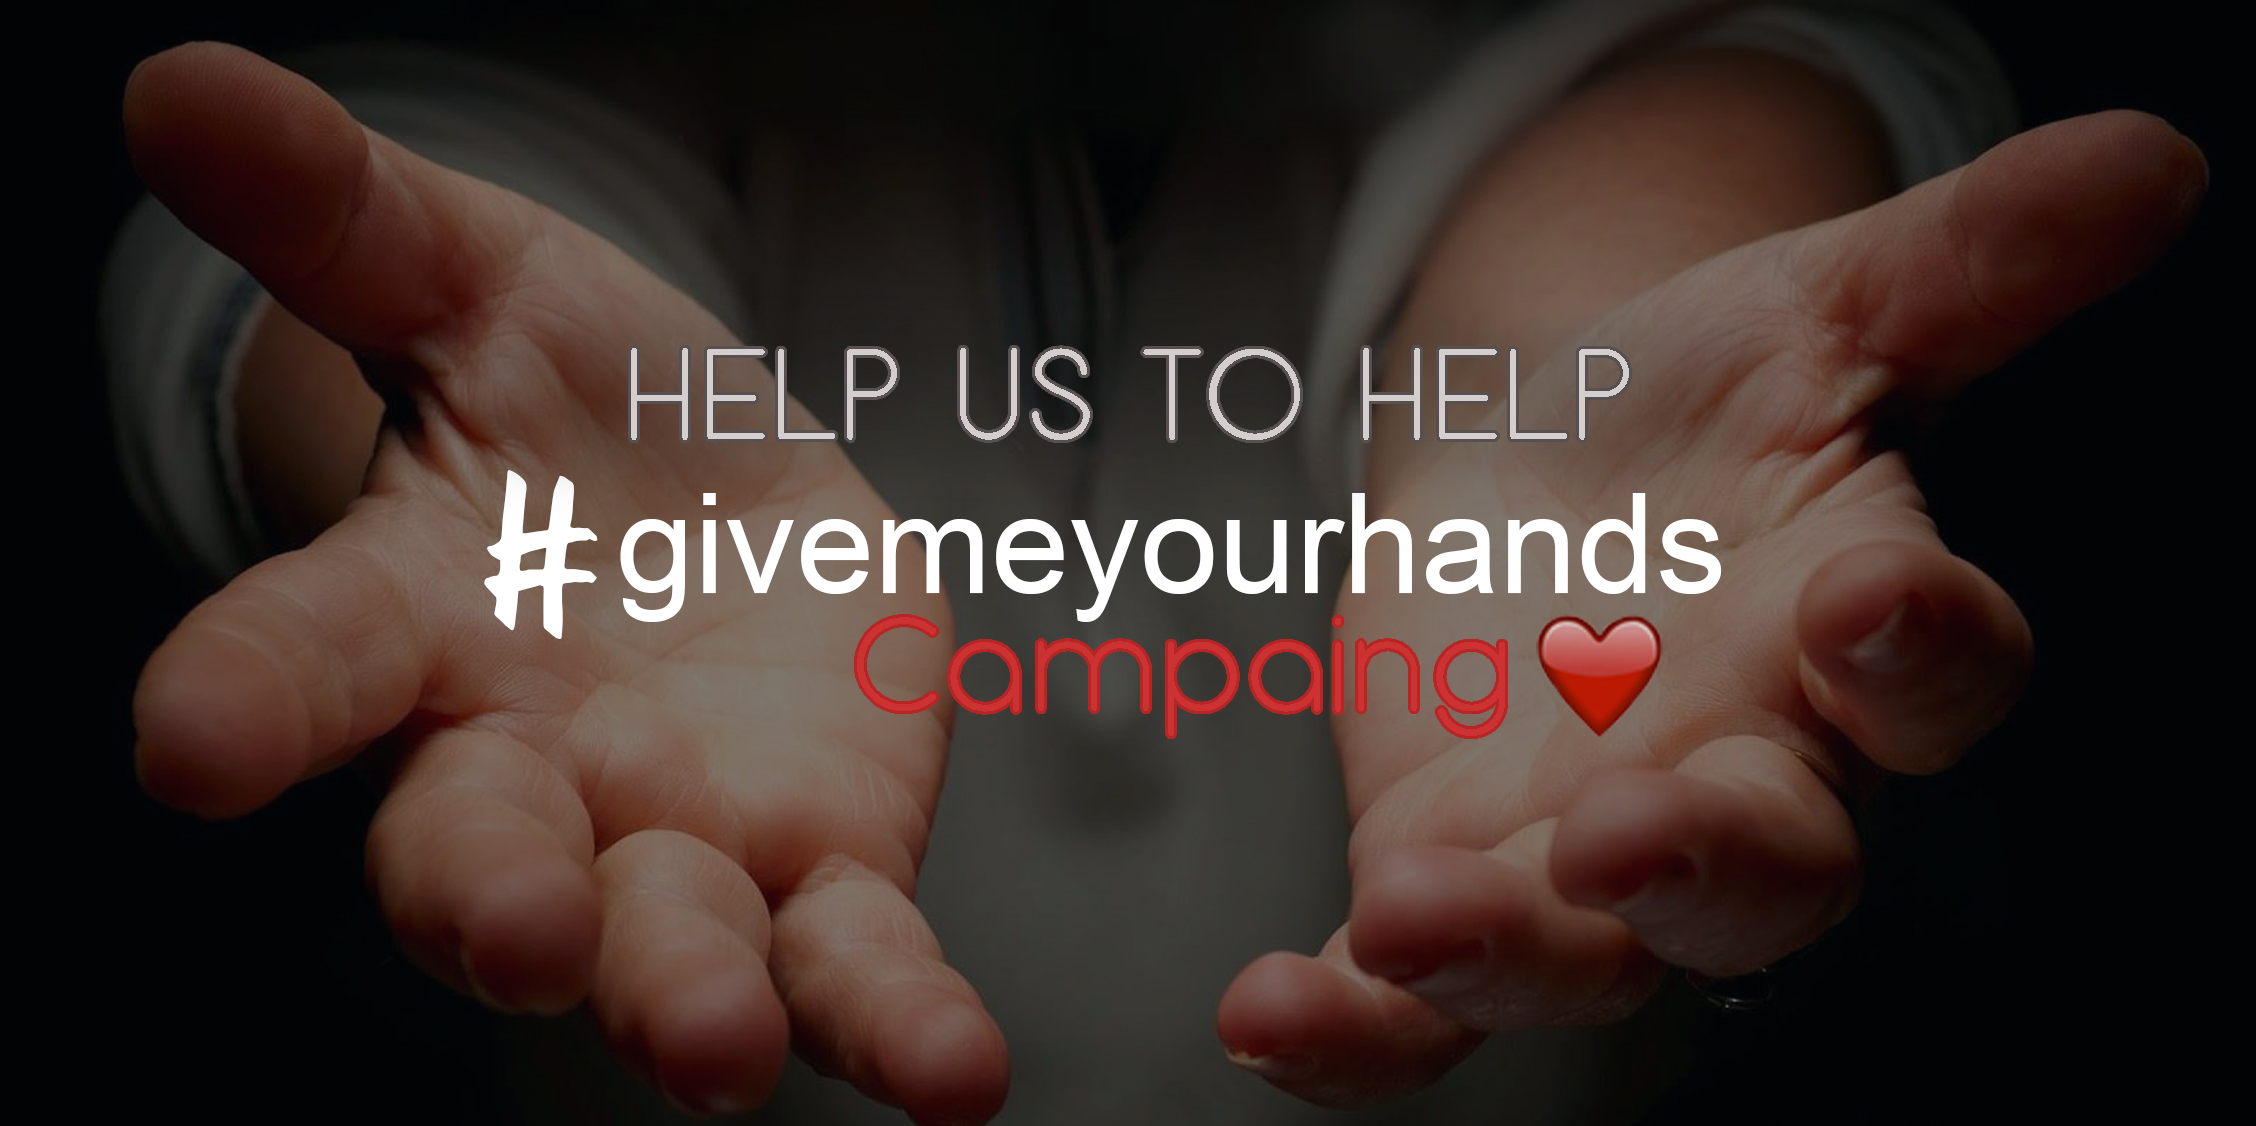 Give-me-your-hands-campaing